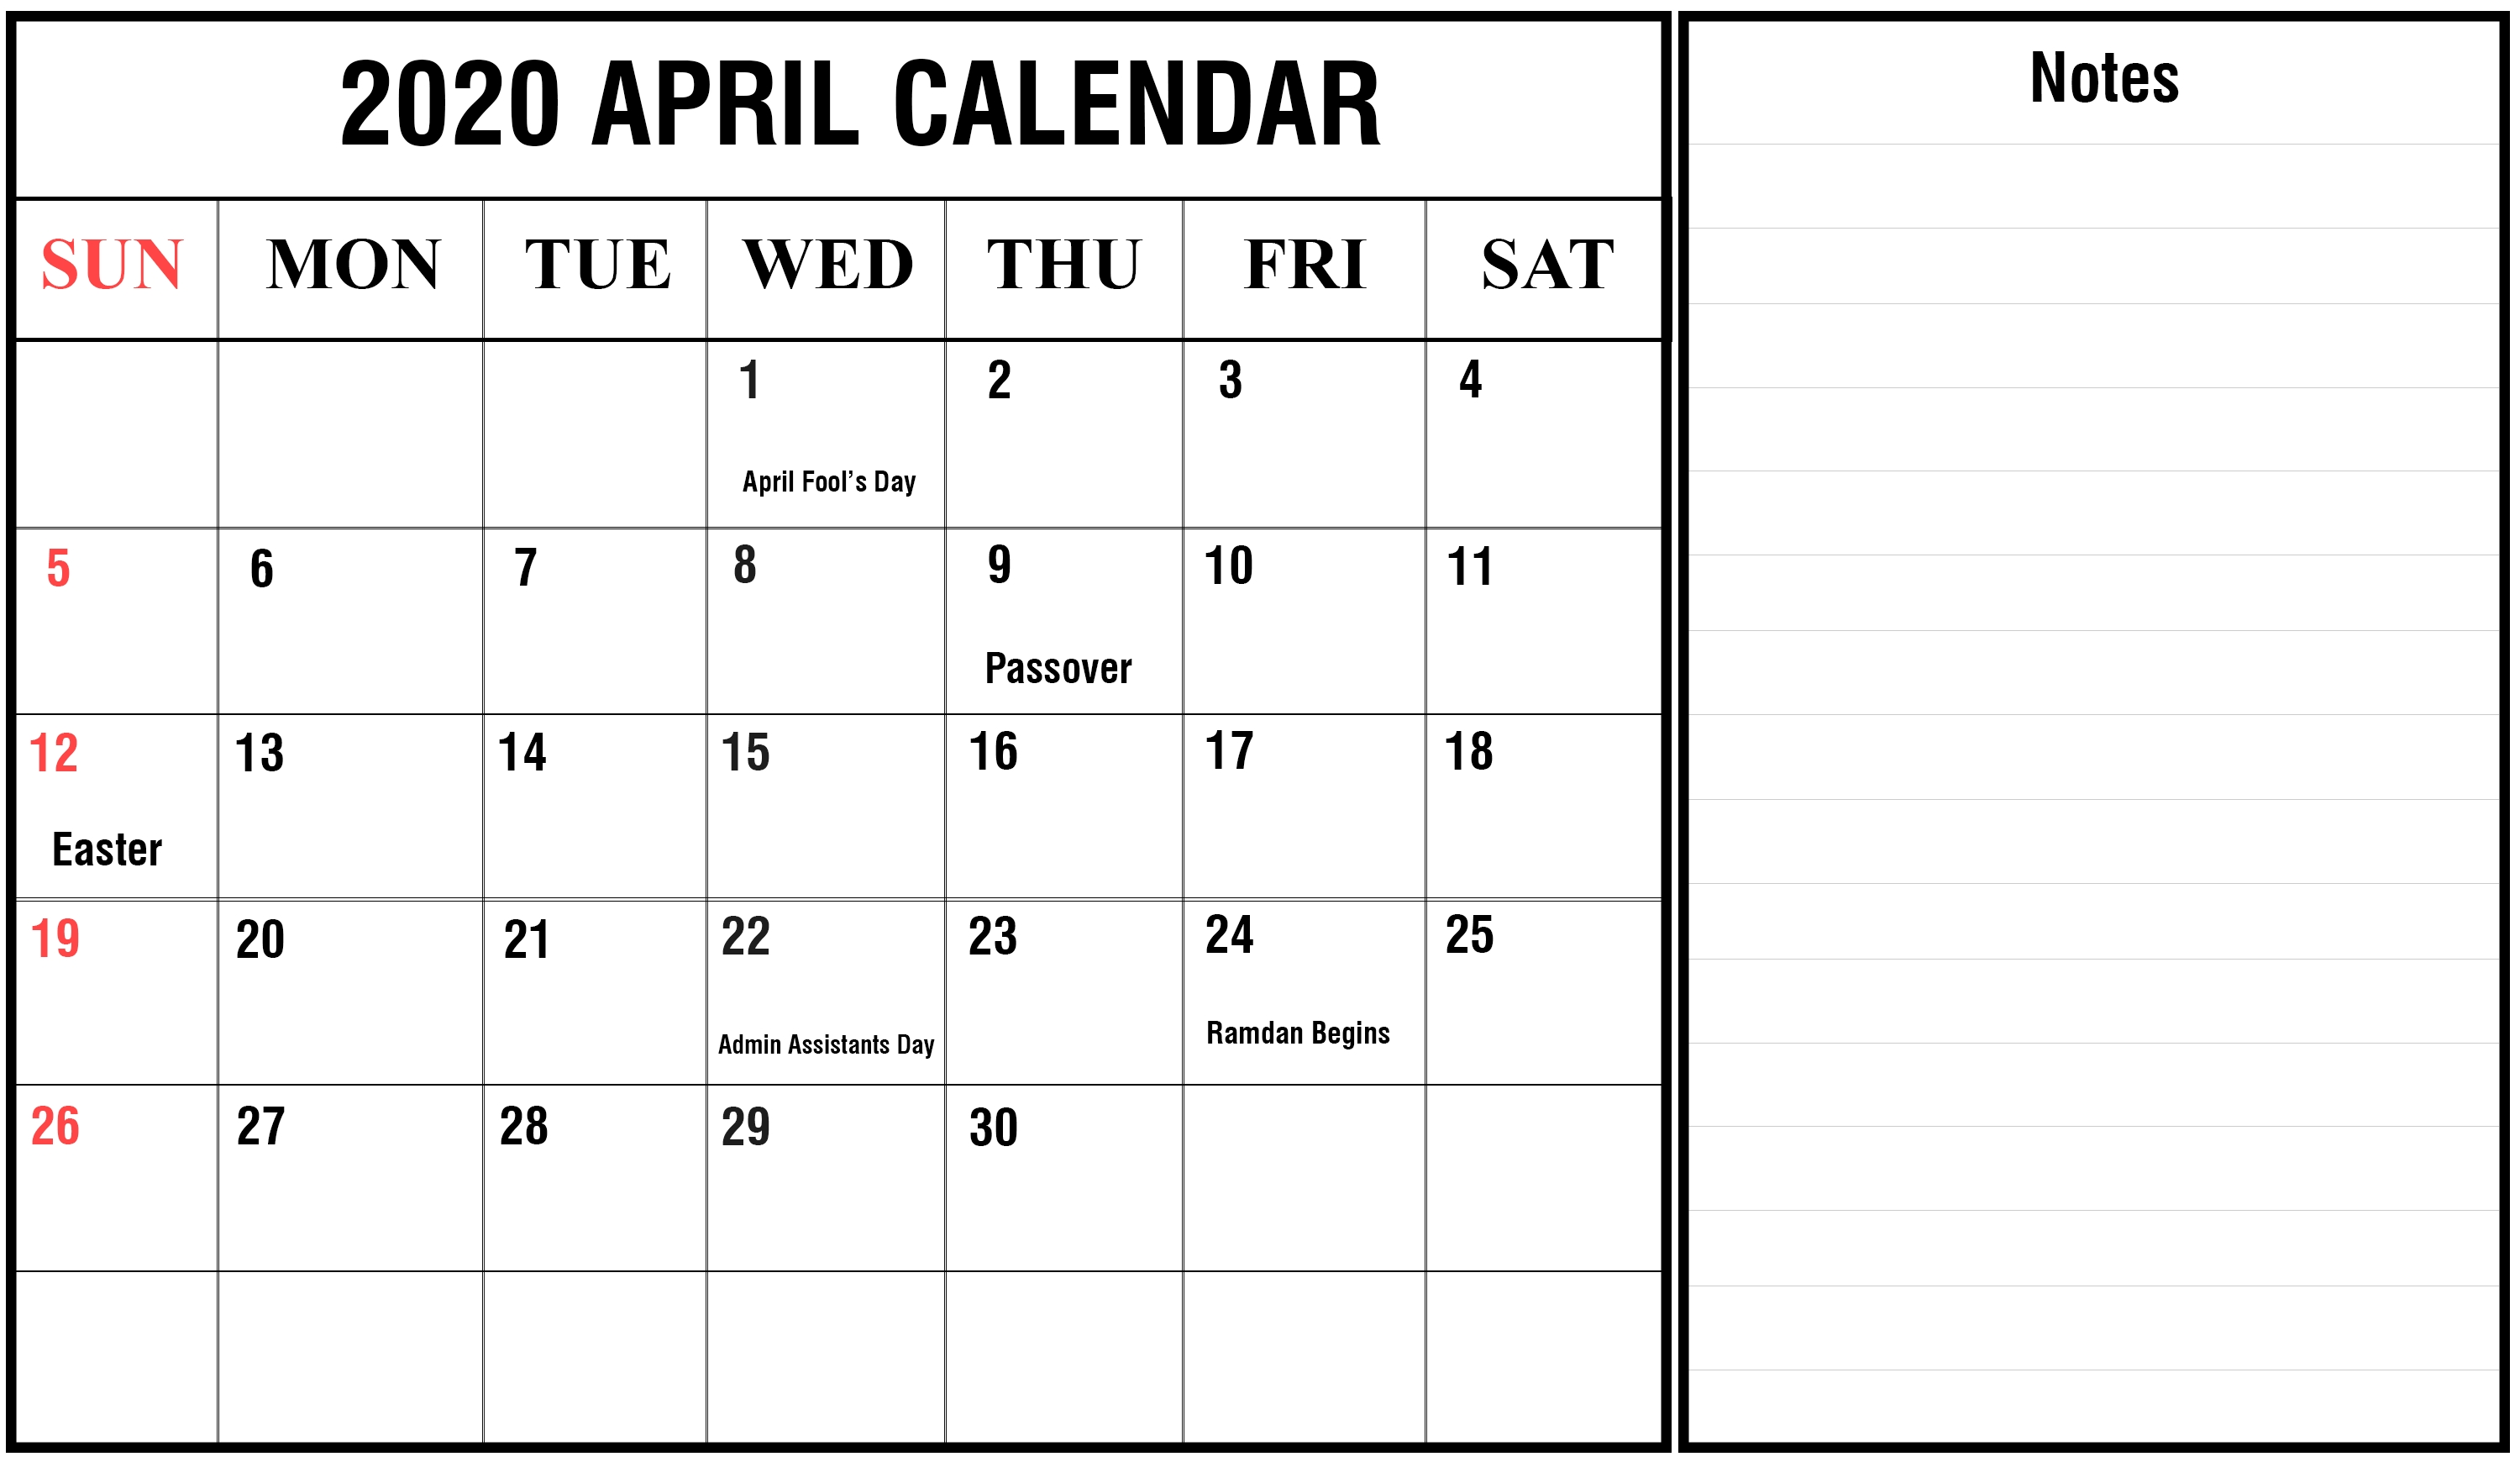 Free April Calendar 2020 Printable Editable Template-2020 Monthly Calendars To Print With Jewish Holidays